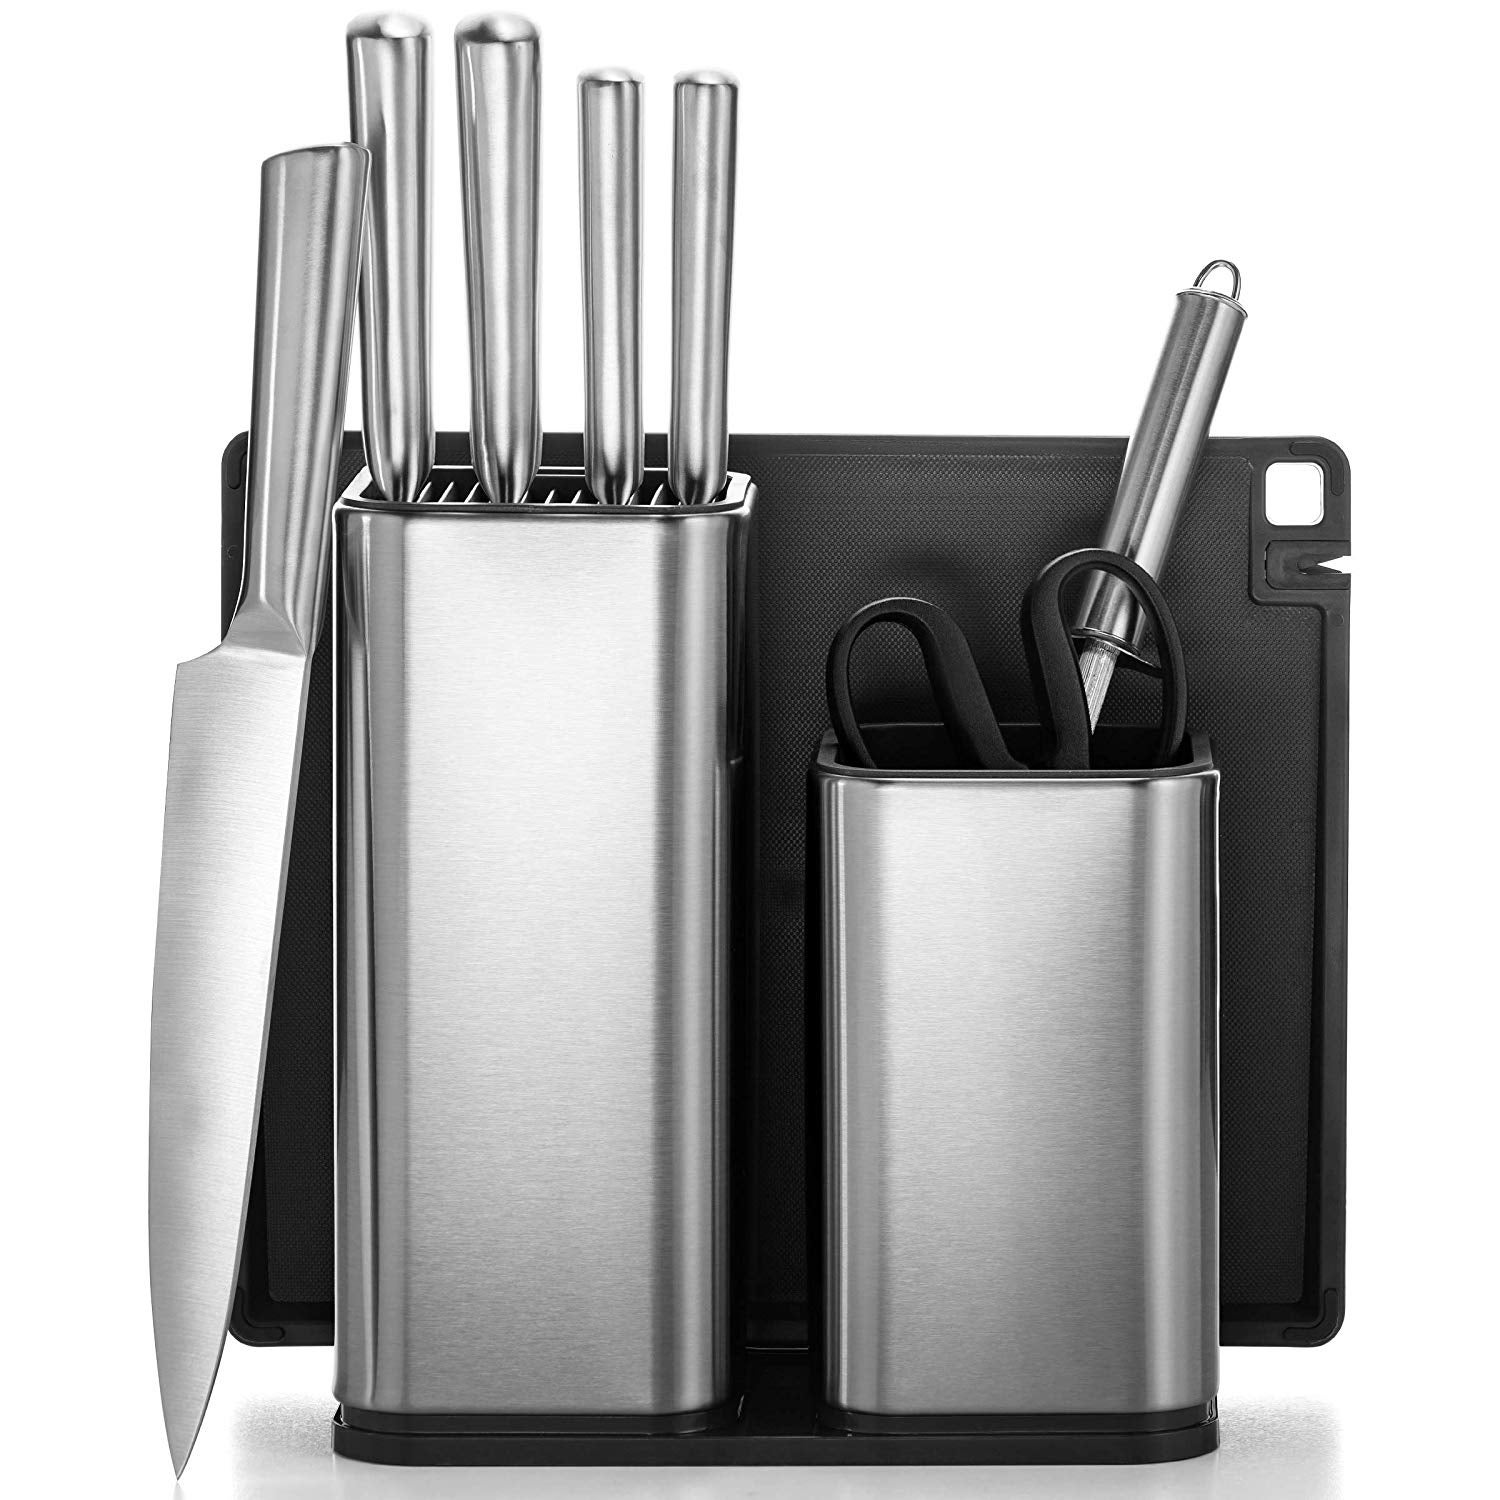 10 Piece Stainless Steel Kitchen Knife Set With Utensil Holder 5 S S Knives Knife Sharpener Kitchen Scissors Cutting Board On Sale Overstock 30428559